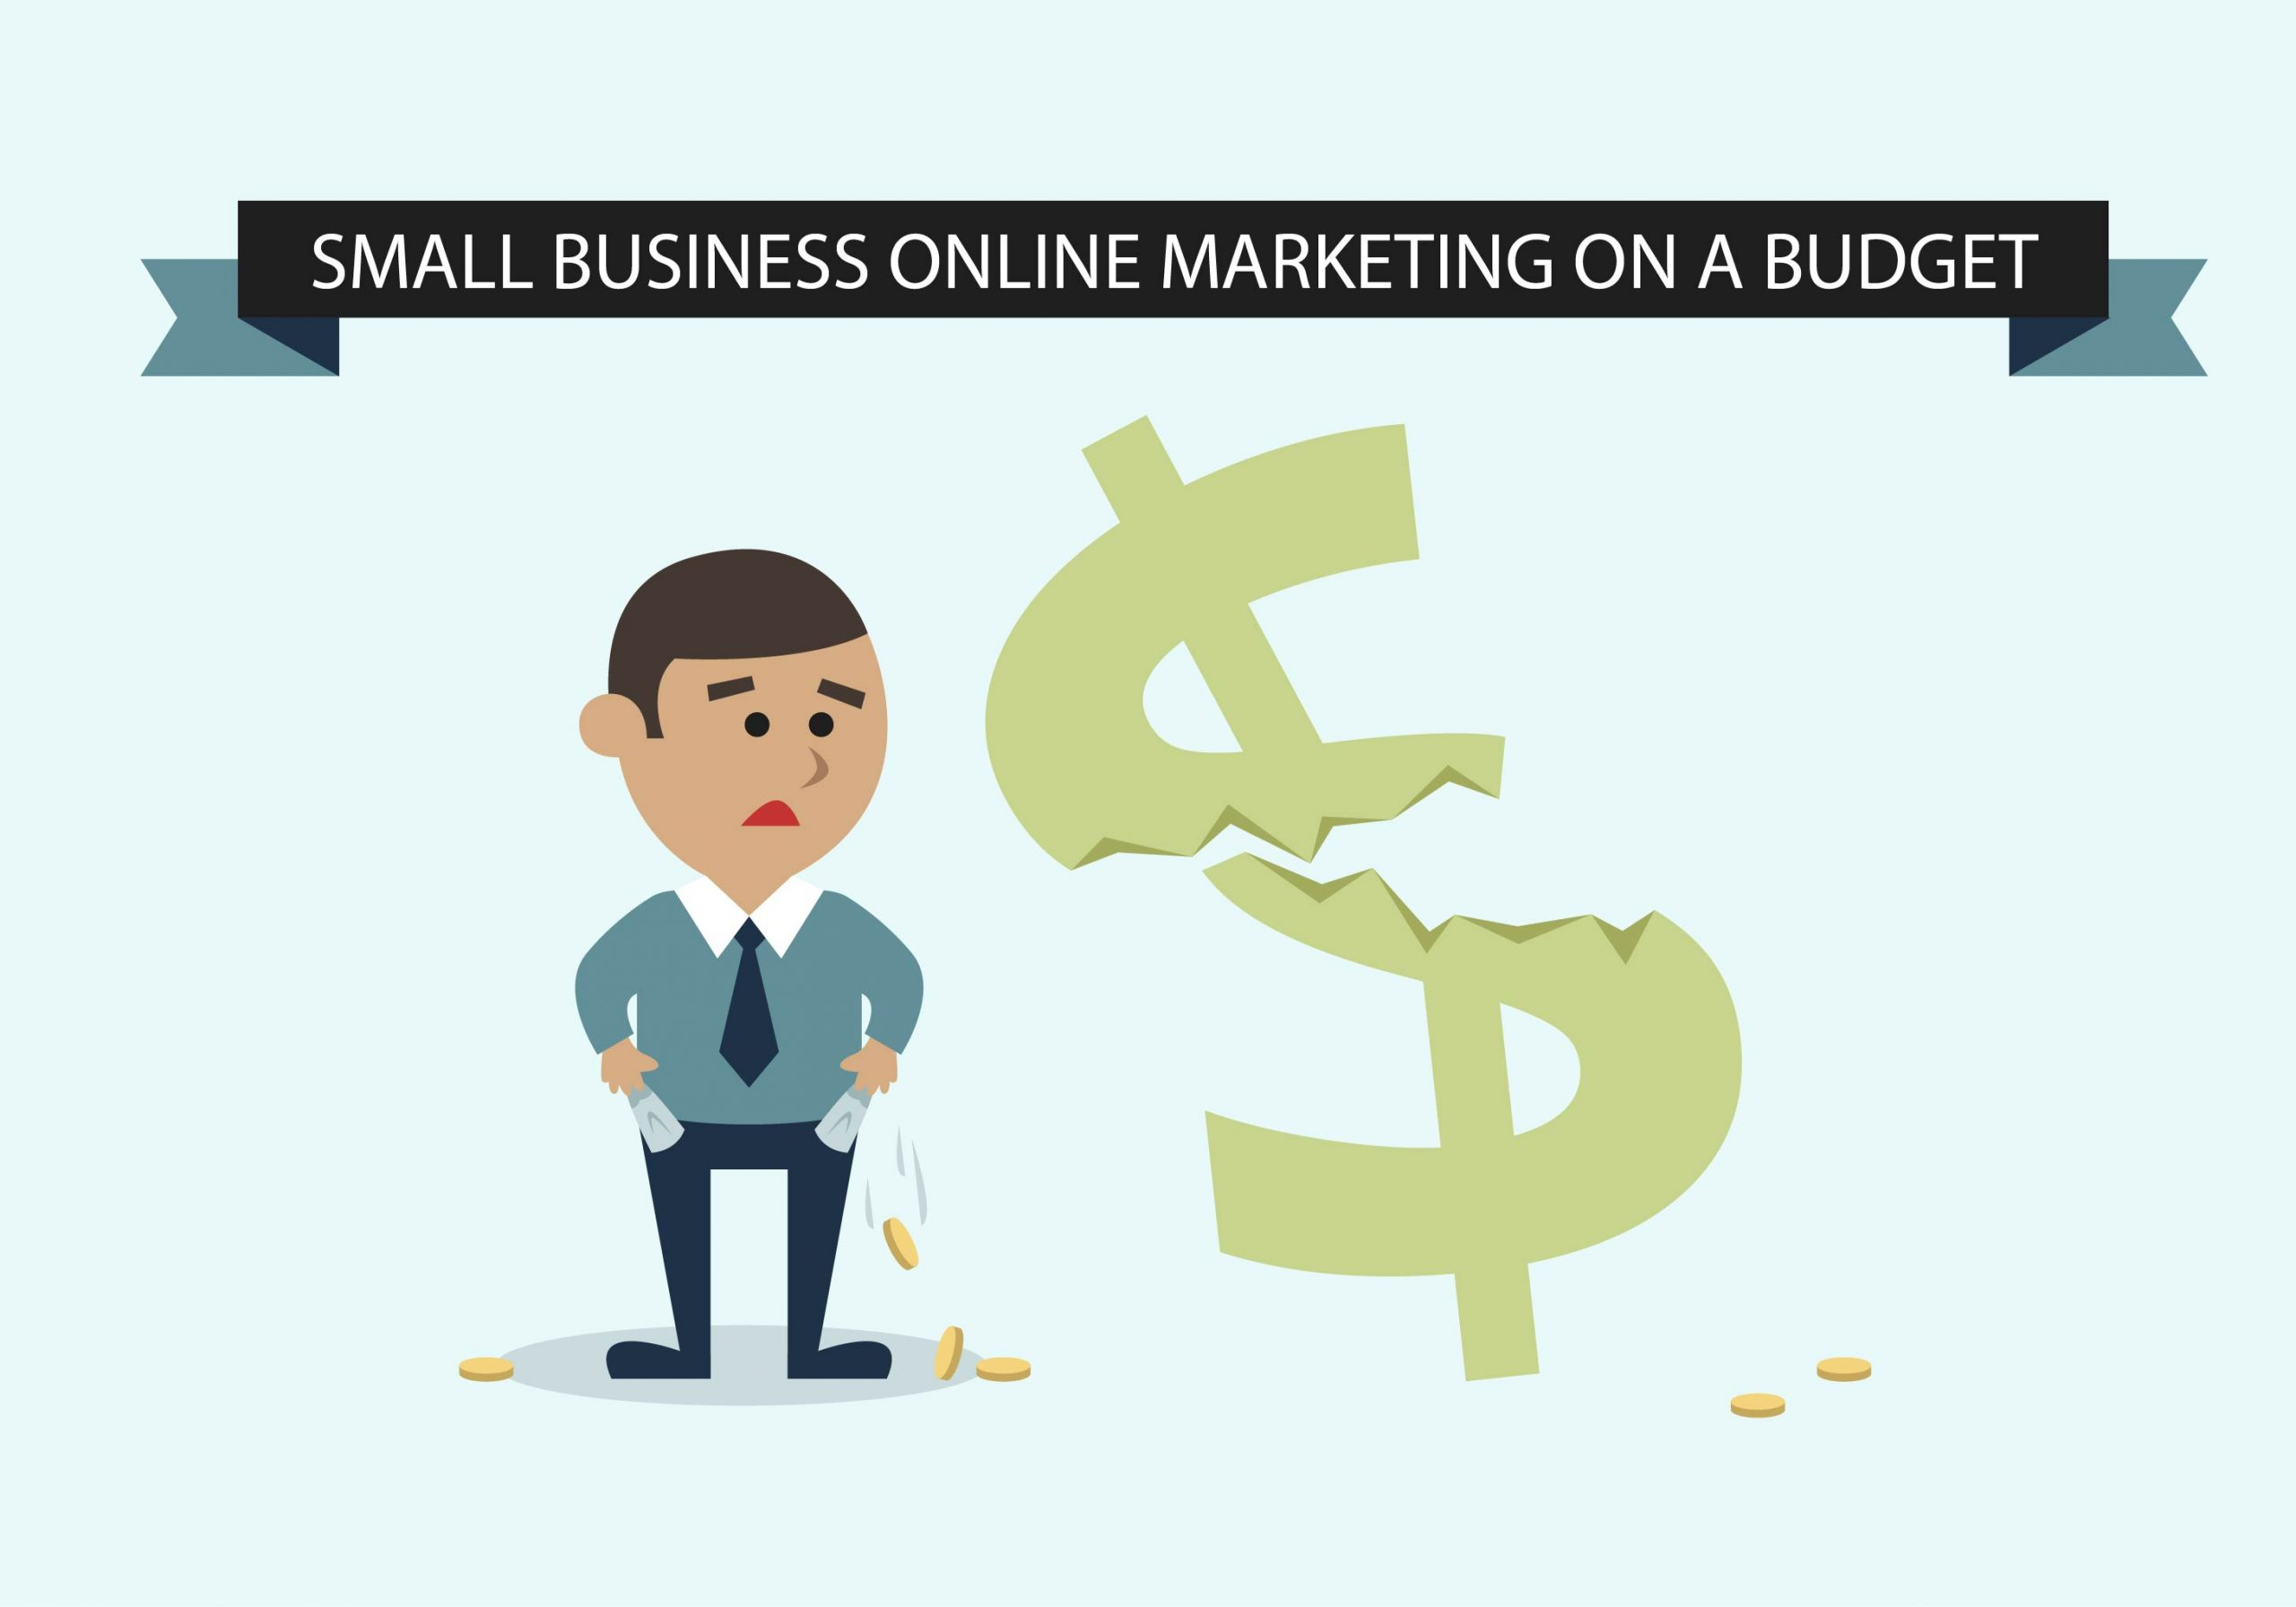 Small Business Online Marketing on a Budget